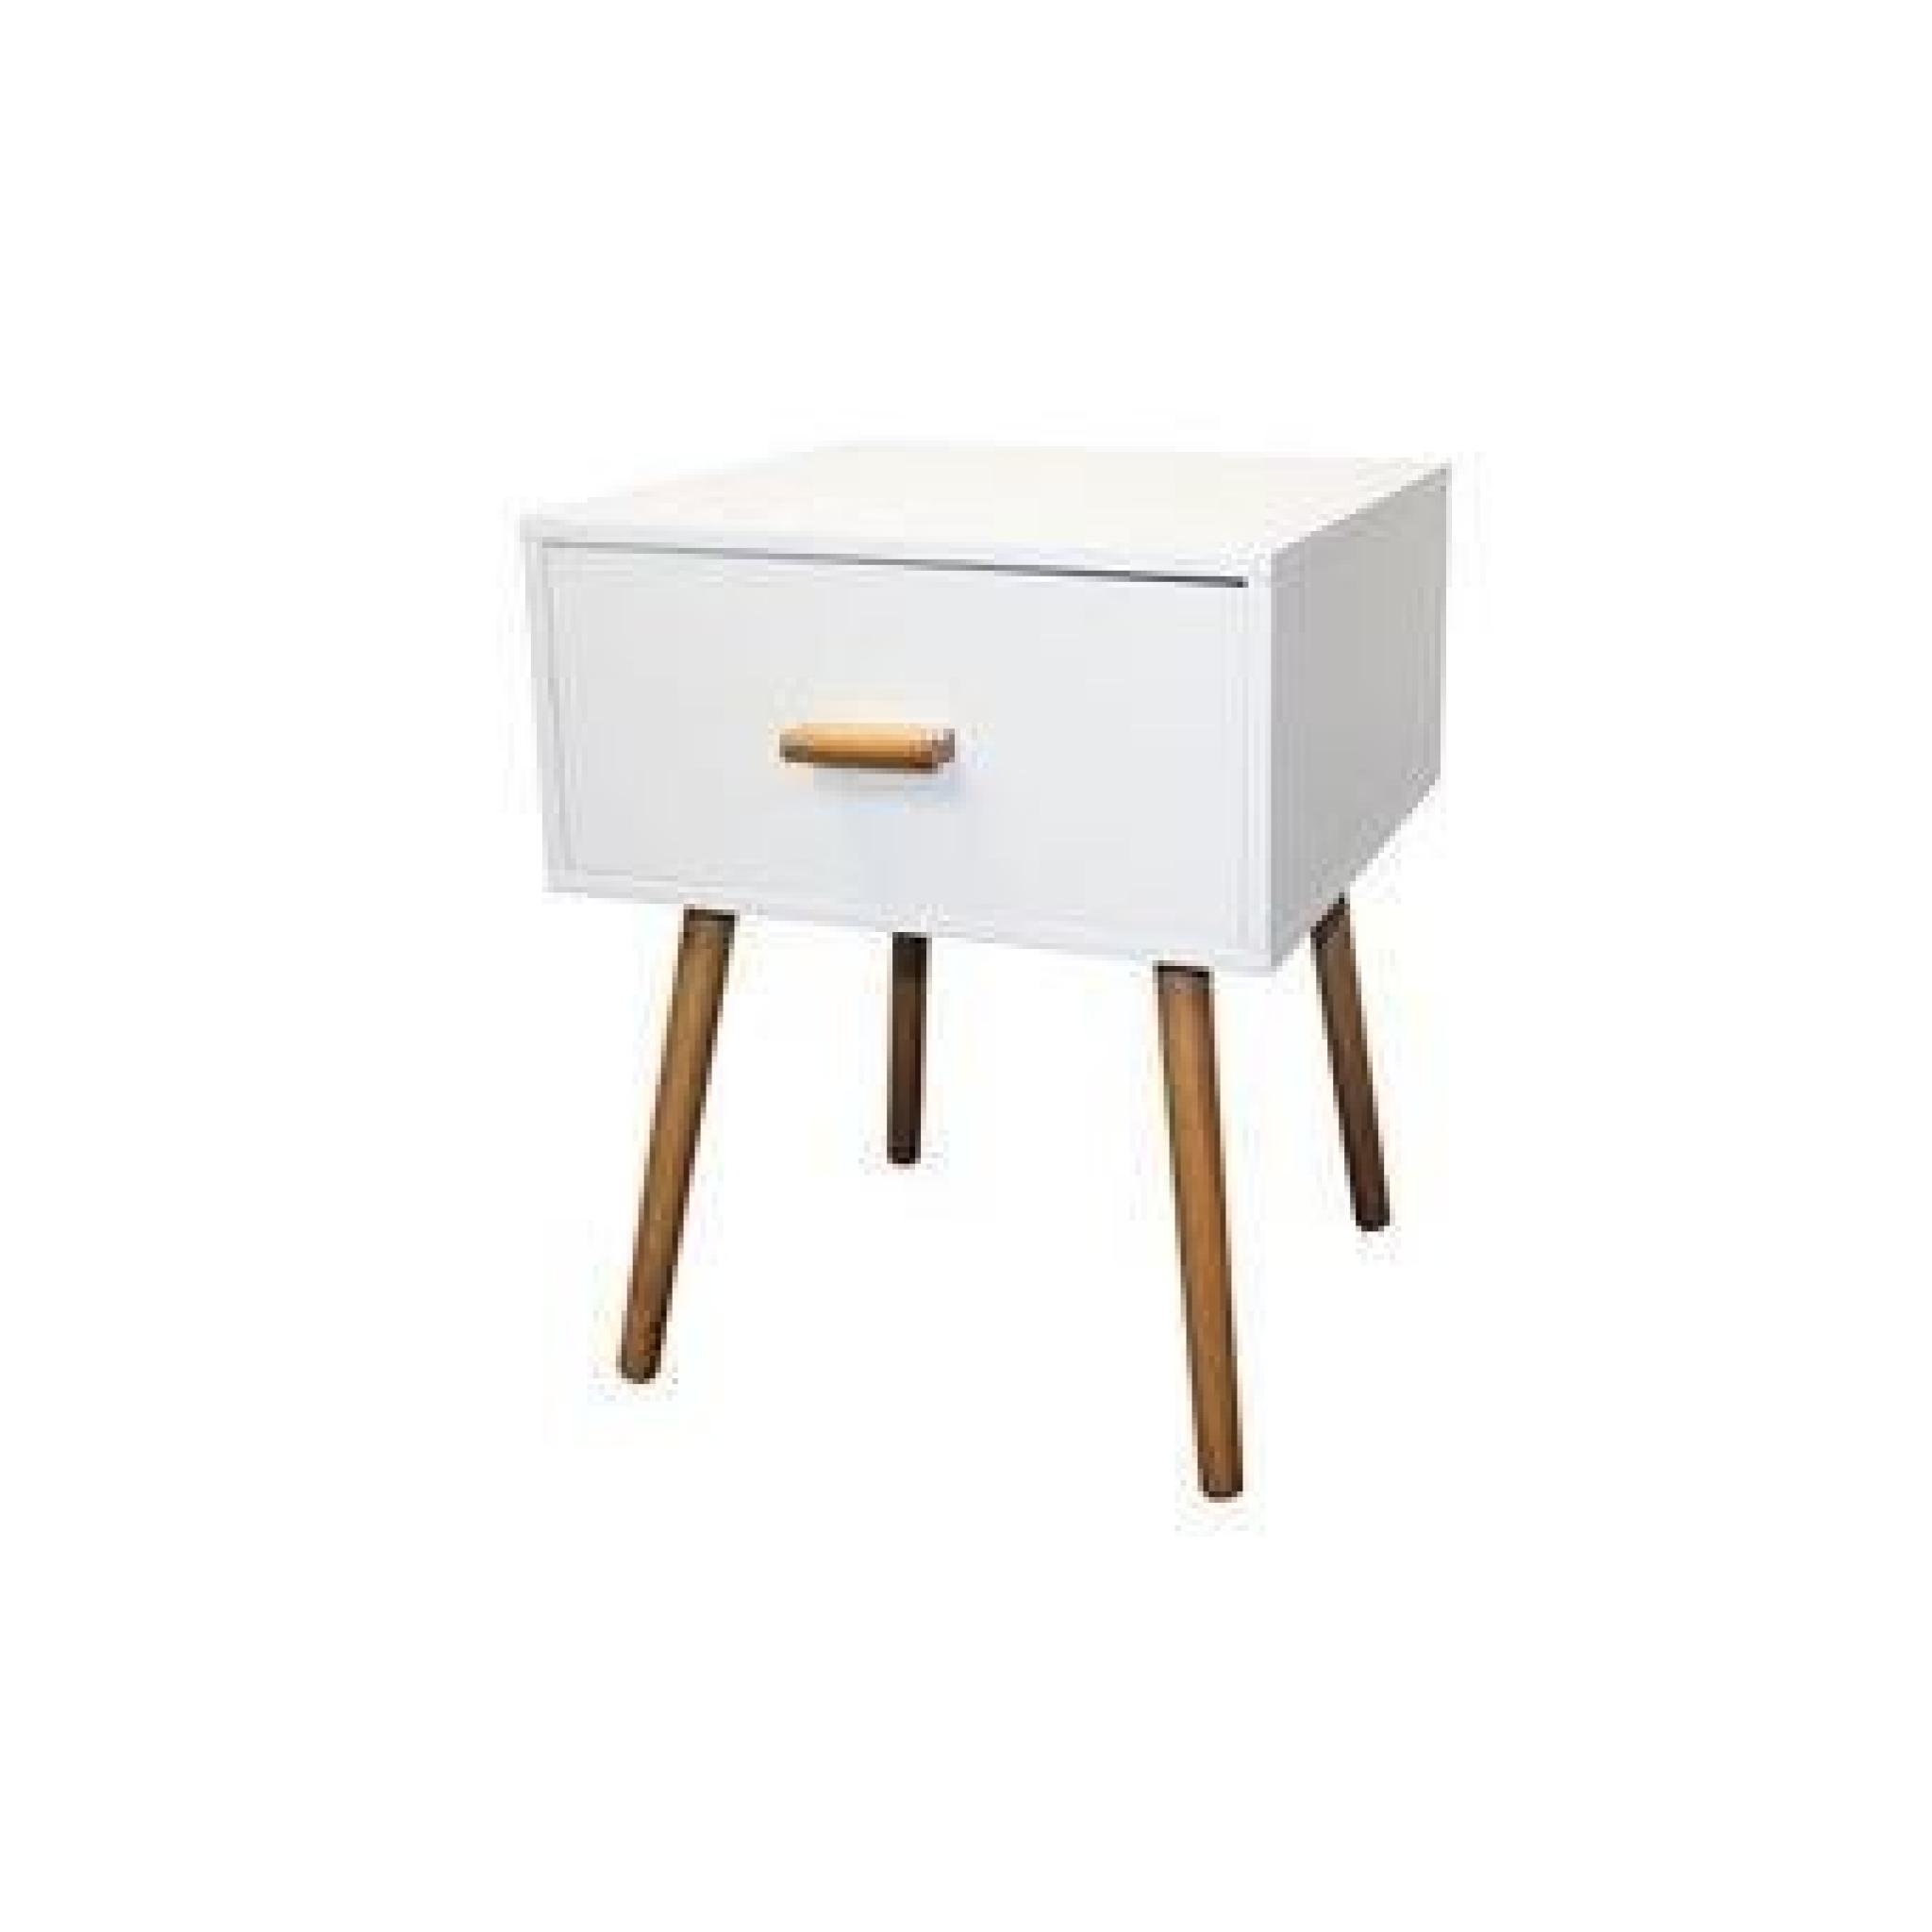 Table de chevet blanc design scandinave achat vente for Table de chevet blanc laque pas cher